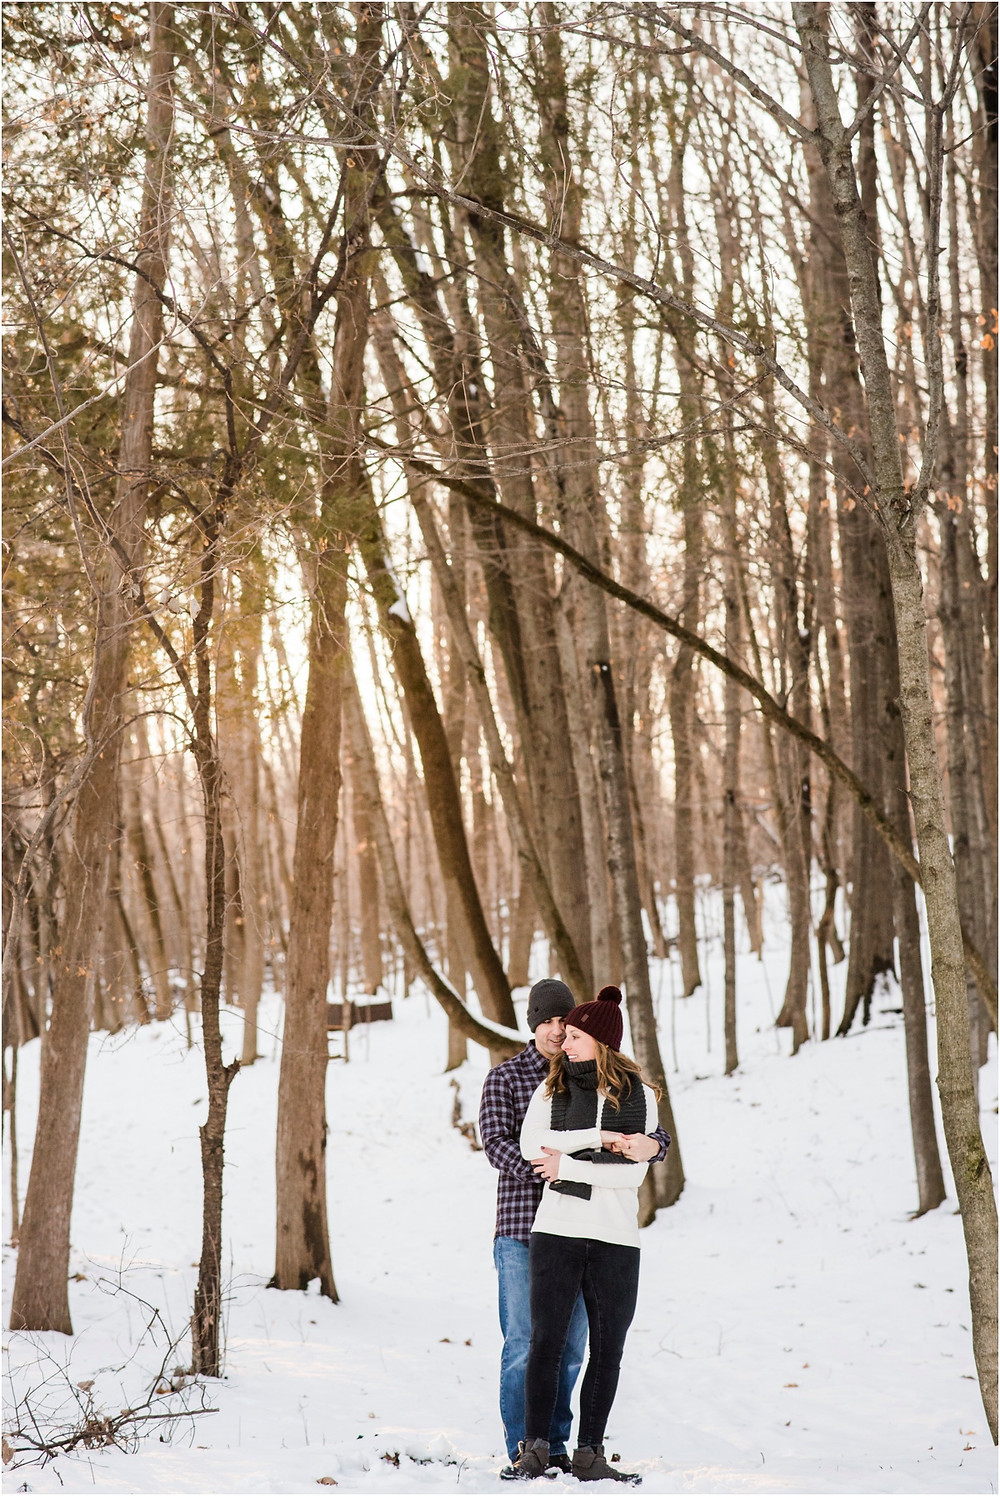 engaged-couple-cuddled-in-the-woods-at-pamperin-park-winter-engagement-session-by-appleton-wedding-photographer-kyra-rane-photography